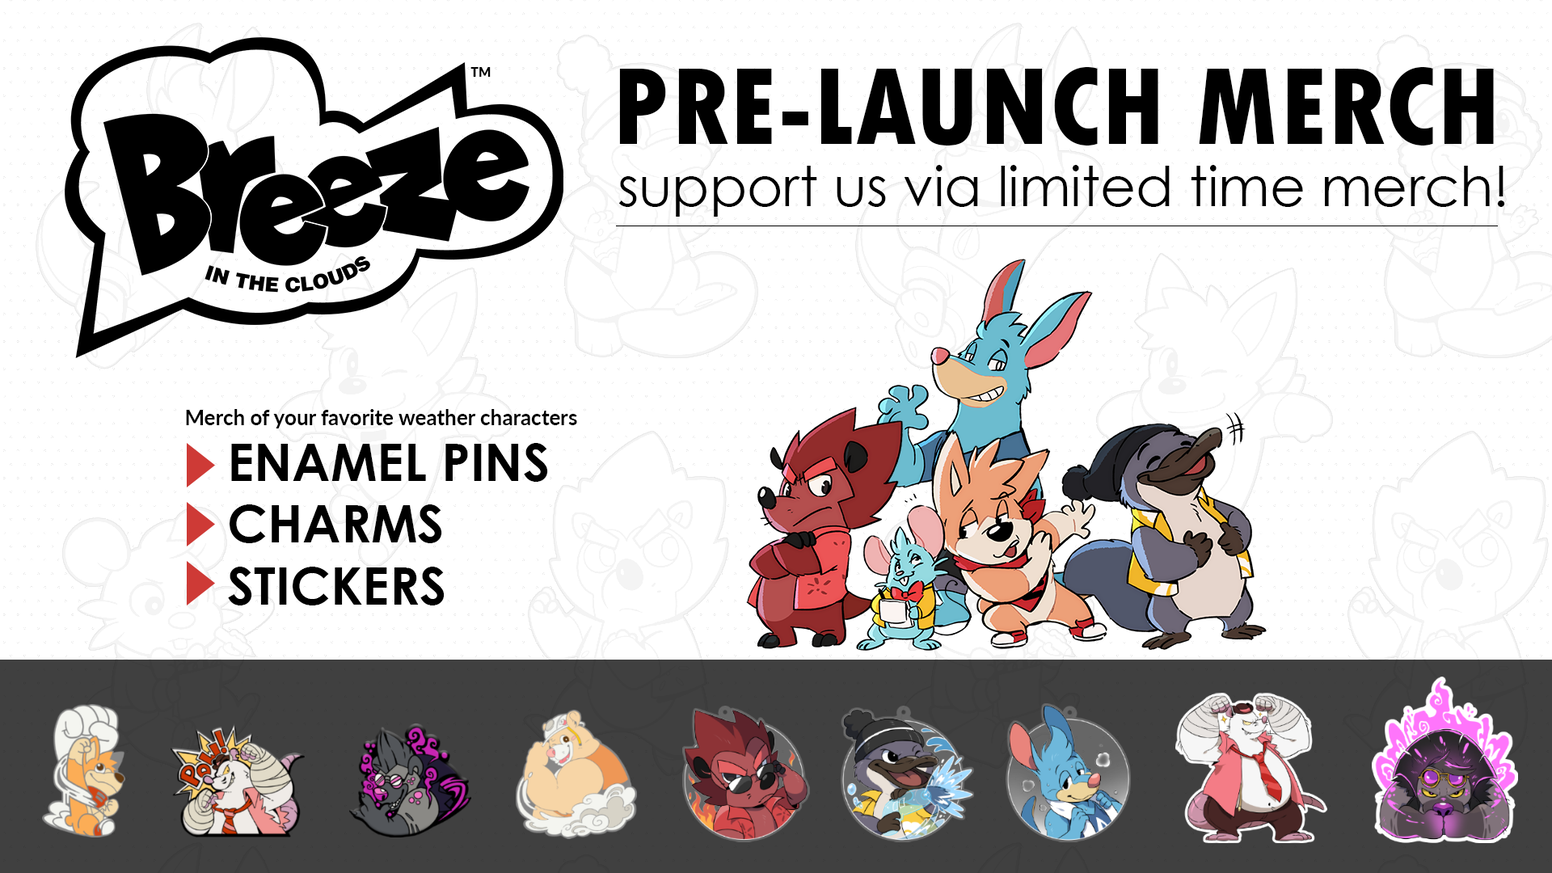 A chance to support the development of our game via limited merch of the game's cast!